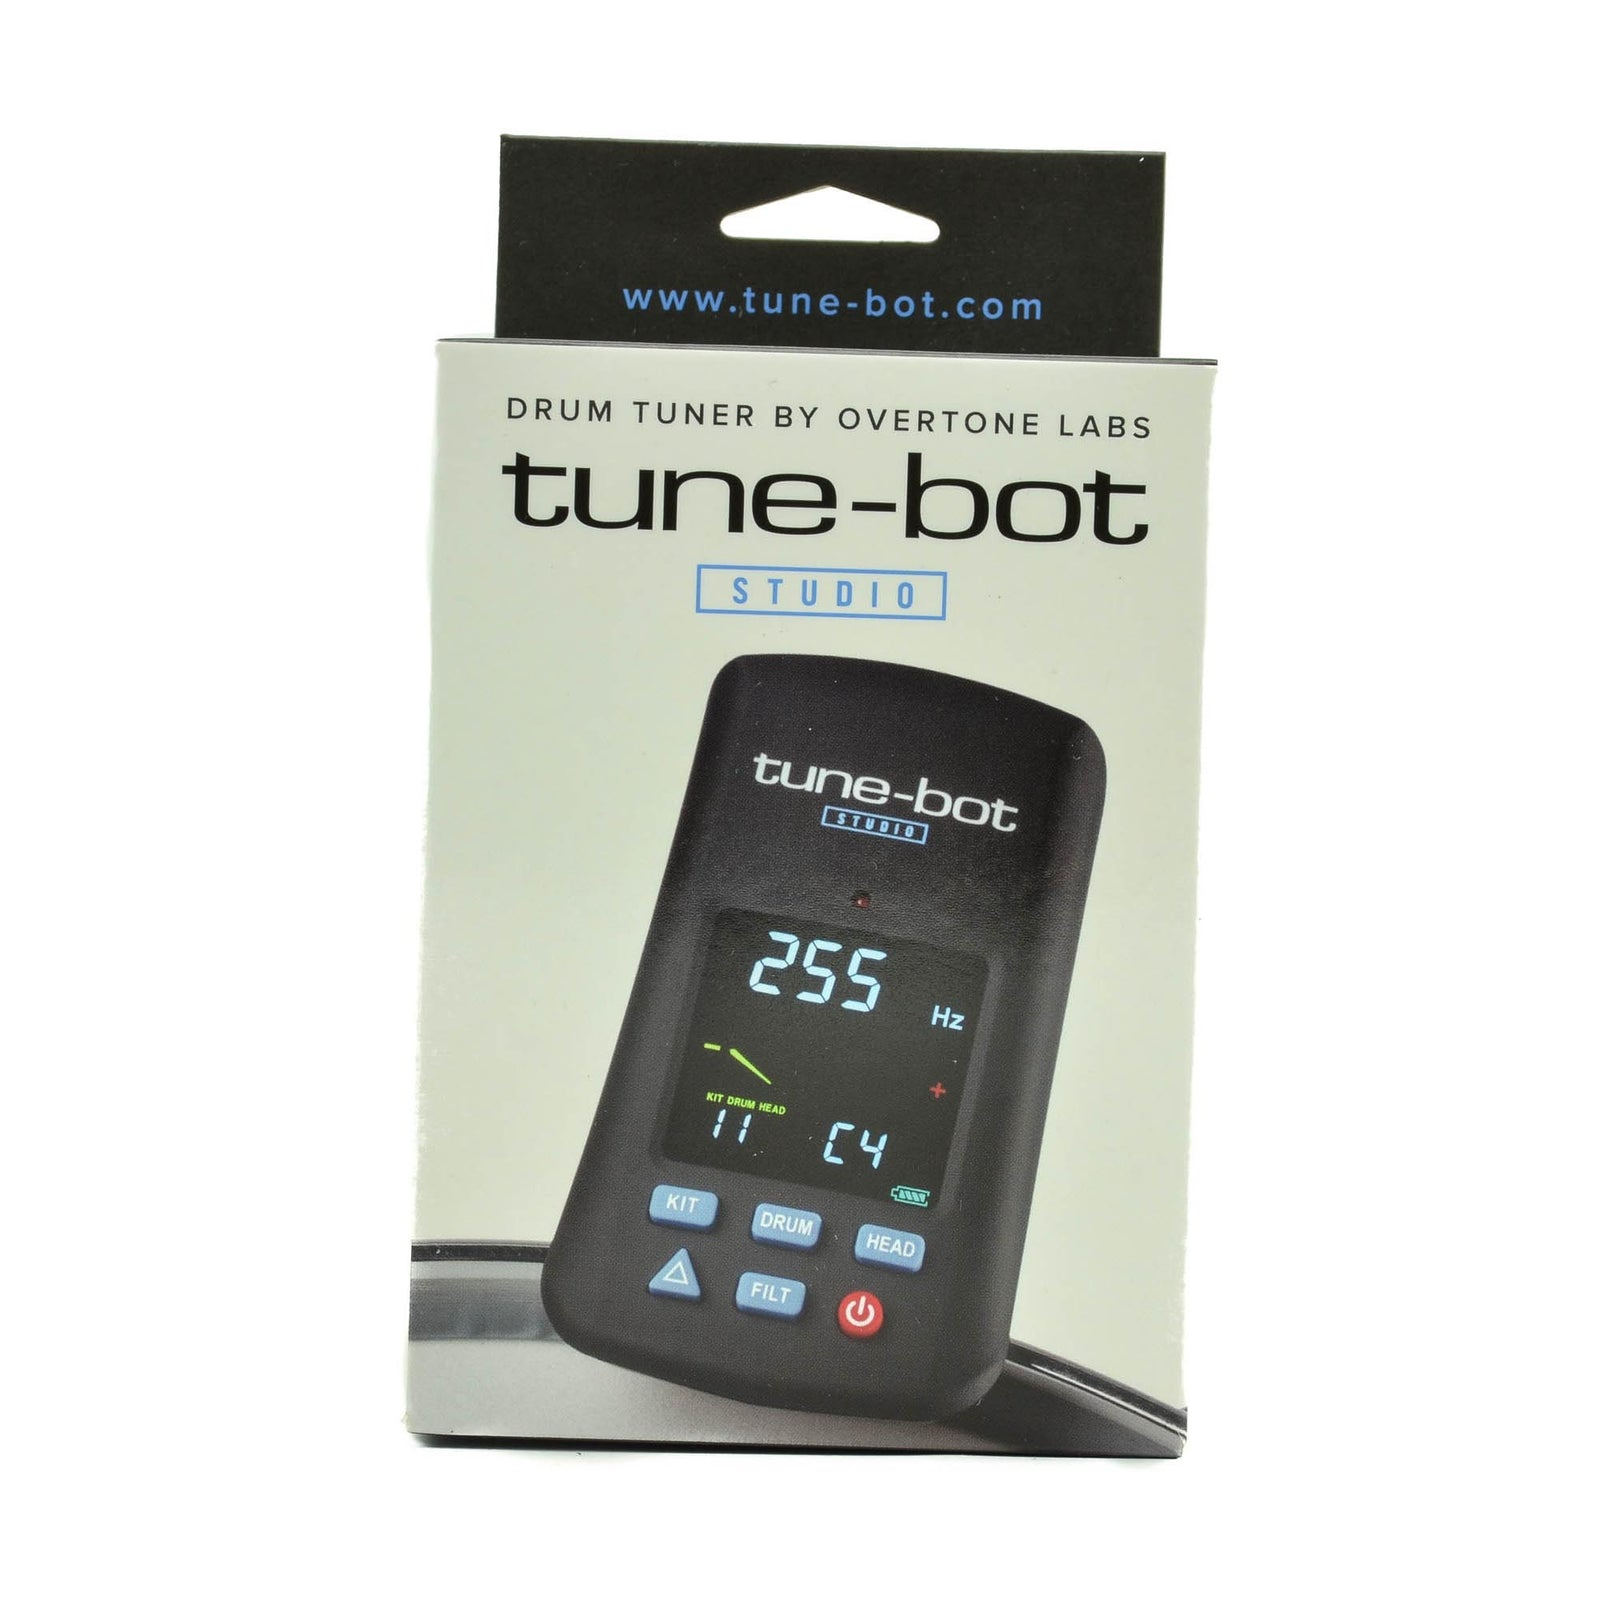 Overtone Labs Tune-Bot Studio Drum Tuner With Case